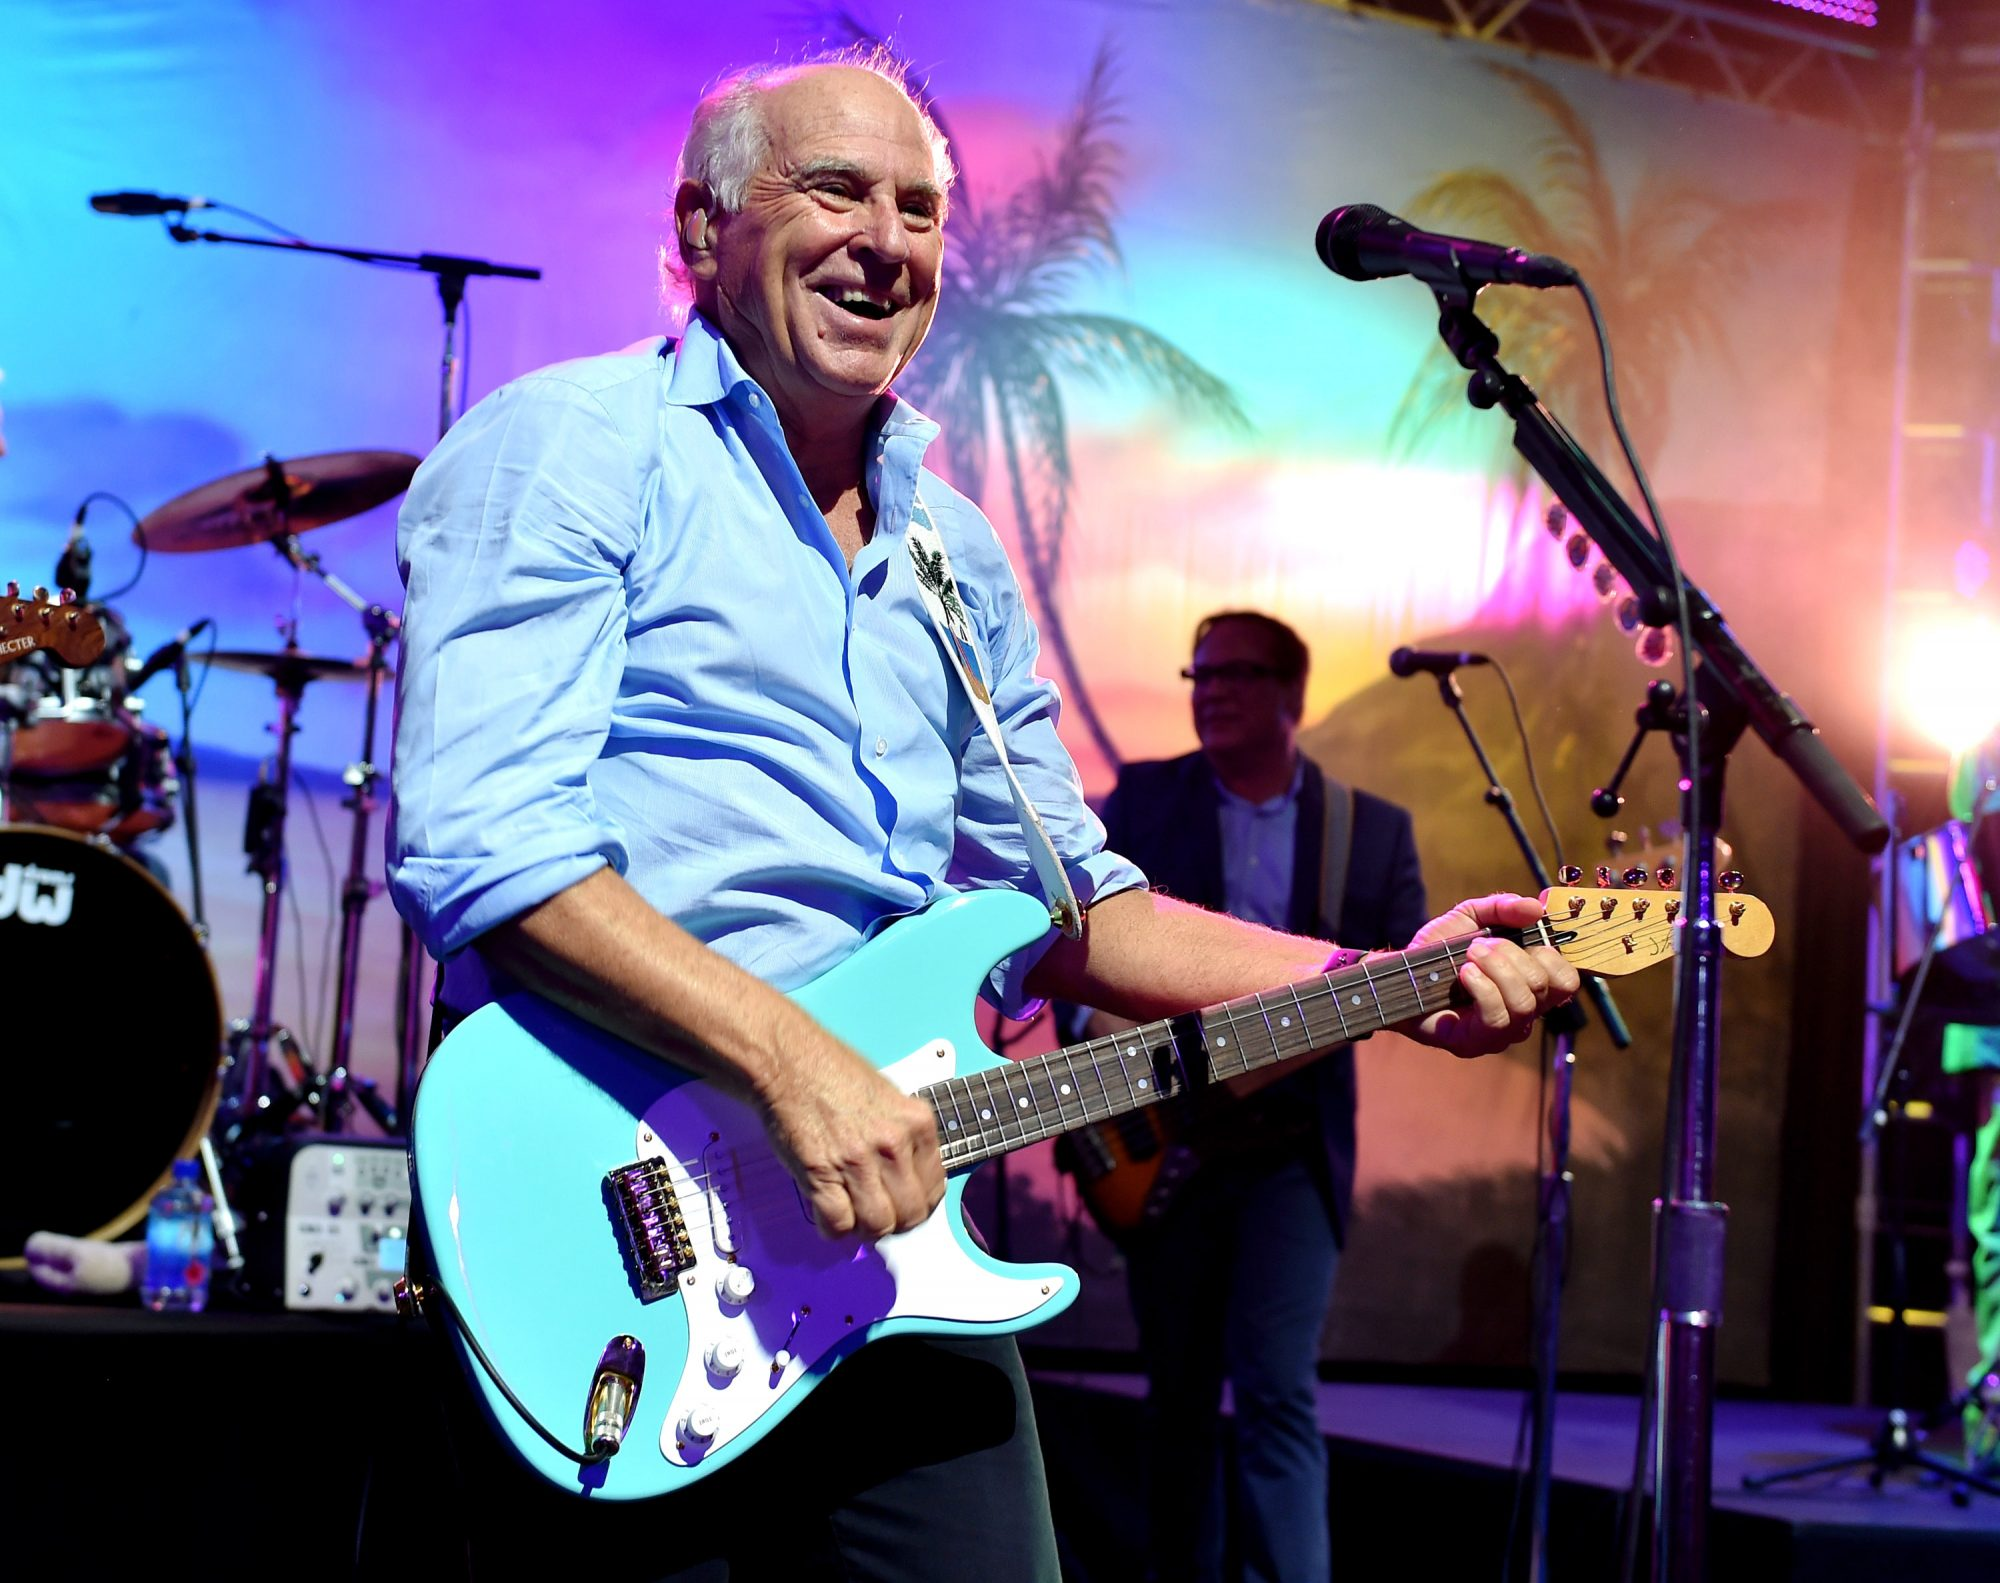 Margaritaville-Themed Retirement Community is Coming to Florida ...